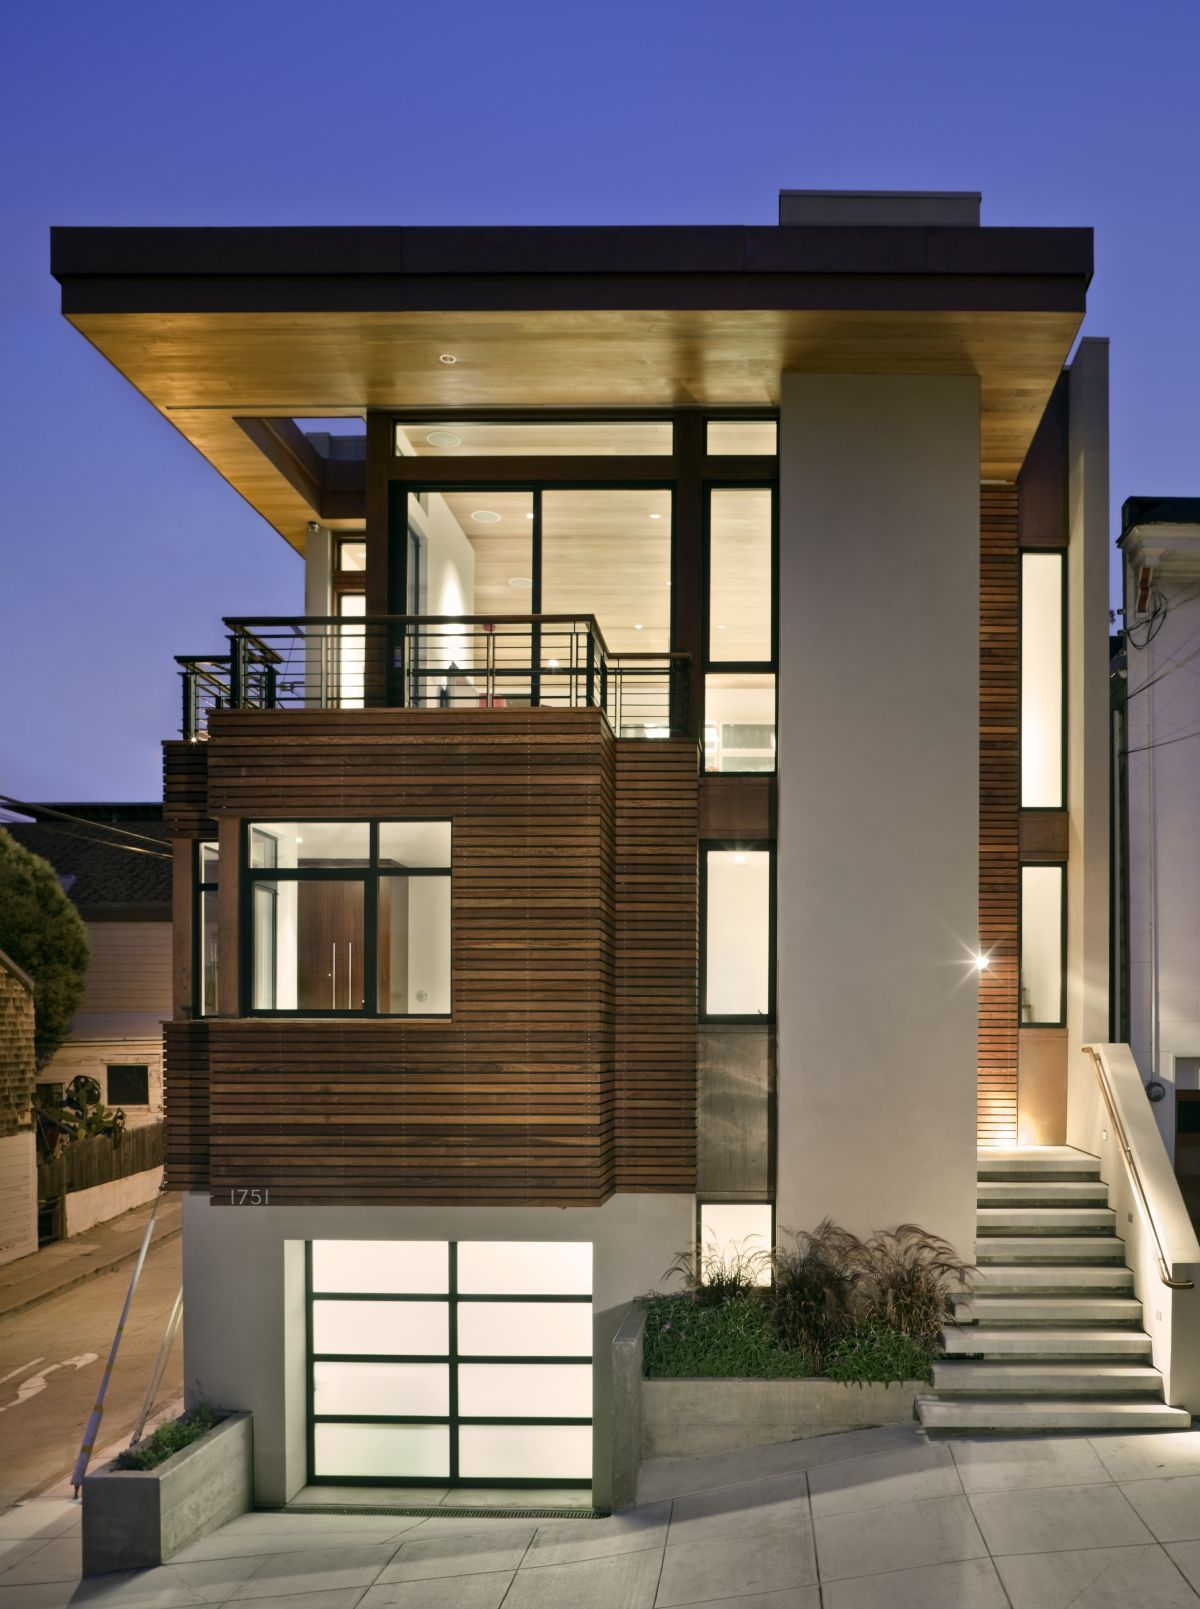 Brilliant 17 Best Images About Dream Homes On Pinterest Micro House Largest Home Design Picture Inspirations Pitcheantrous